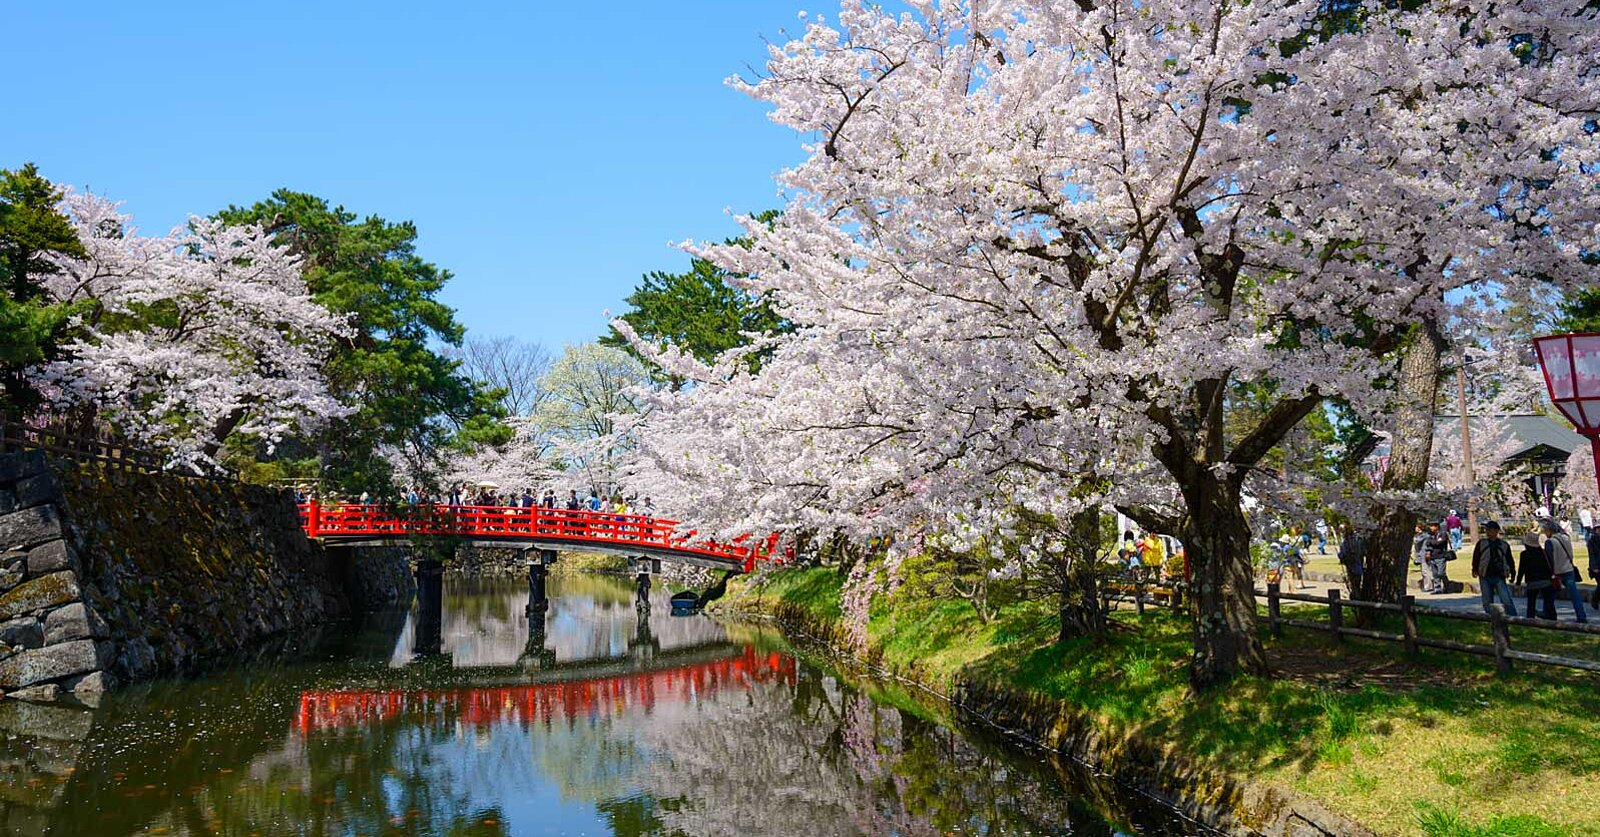 Dying to Visit Japan During Cherry Blossom Season? Go the Unexpected Route by Doing So on a Cruise